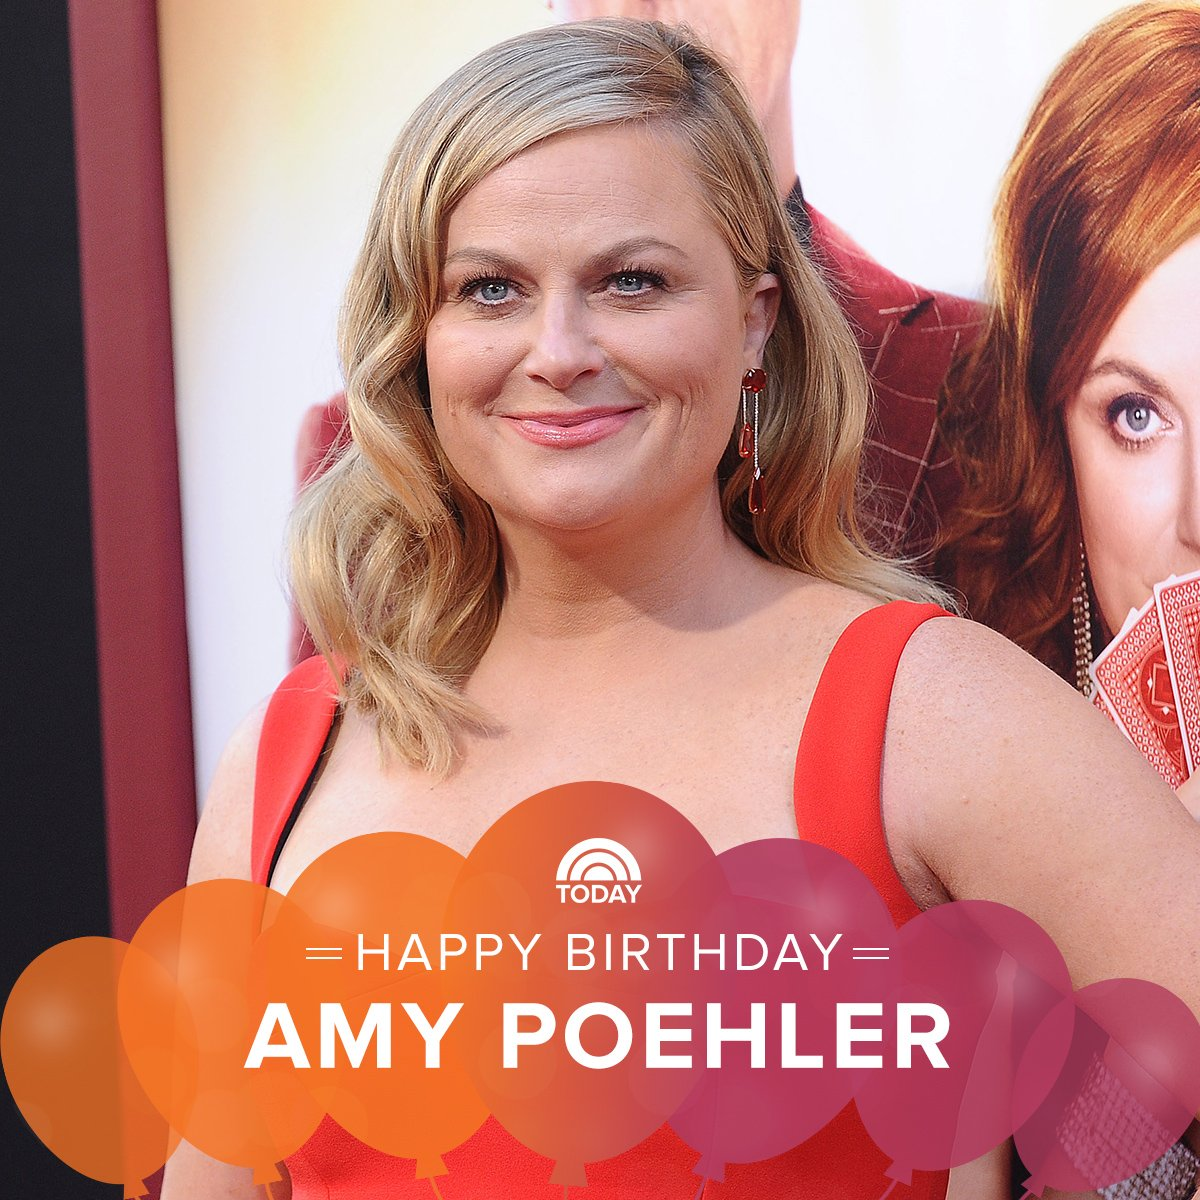 Happy birthday to one of our favorite ladies, Amy Poehler!